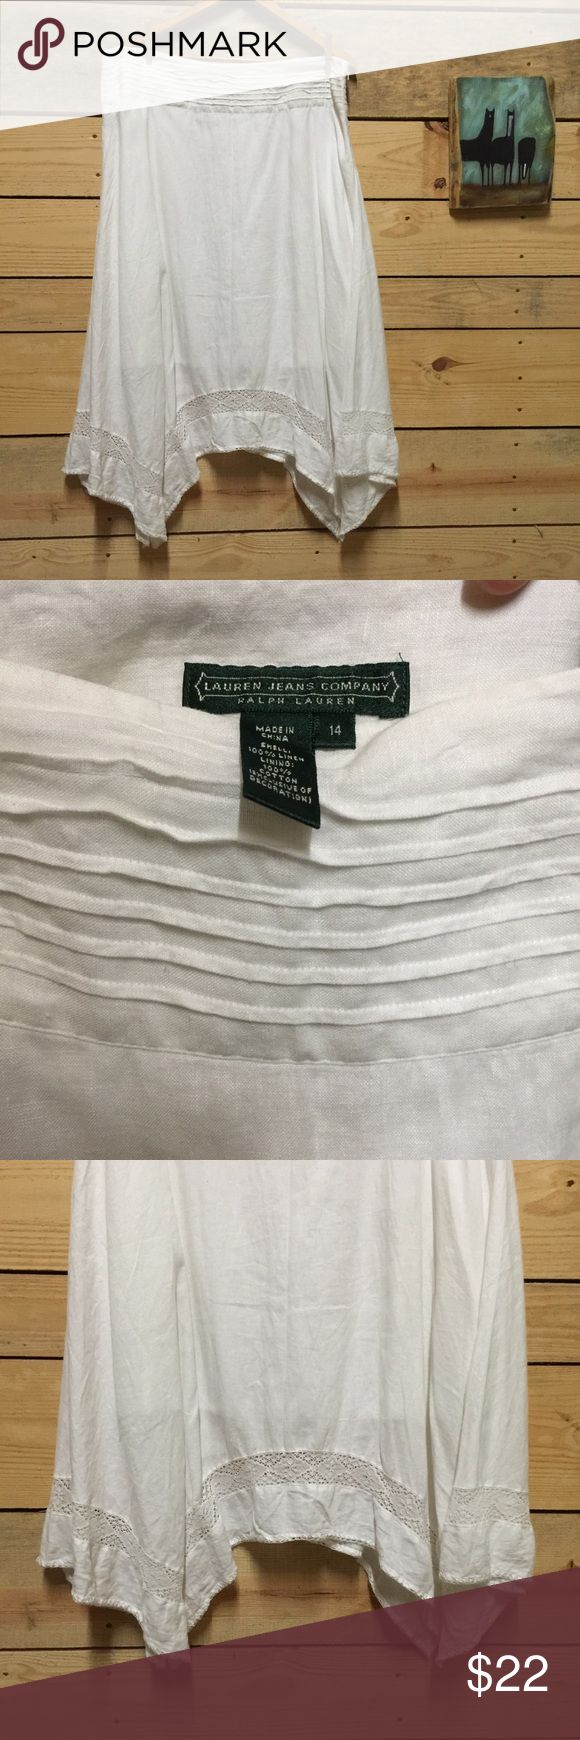 Lauren jeans Co white linen peasant  skirt  sz 14 Lauren Jeans Co.  by Ralph Lauren.   Skirt is classic white linen with handkerchief hemline.   This skirt is lined (I tried to show this in last pic). Beautiful detail at waistband and at hemline.   Hippie gypsy peasant style.  Would go beautifully with denim /turquoise and cowboy boots. Size 14. Lauren Jeans Co Skirts